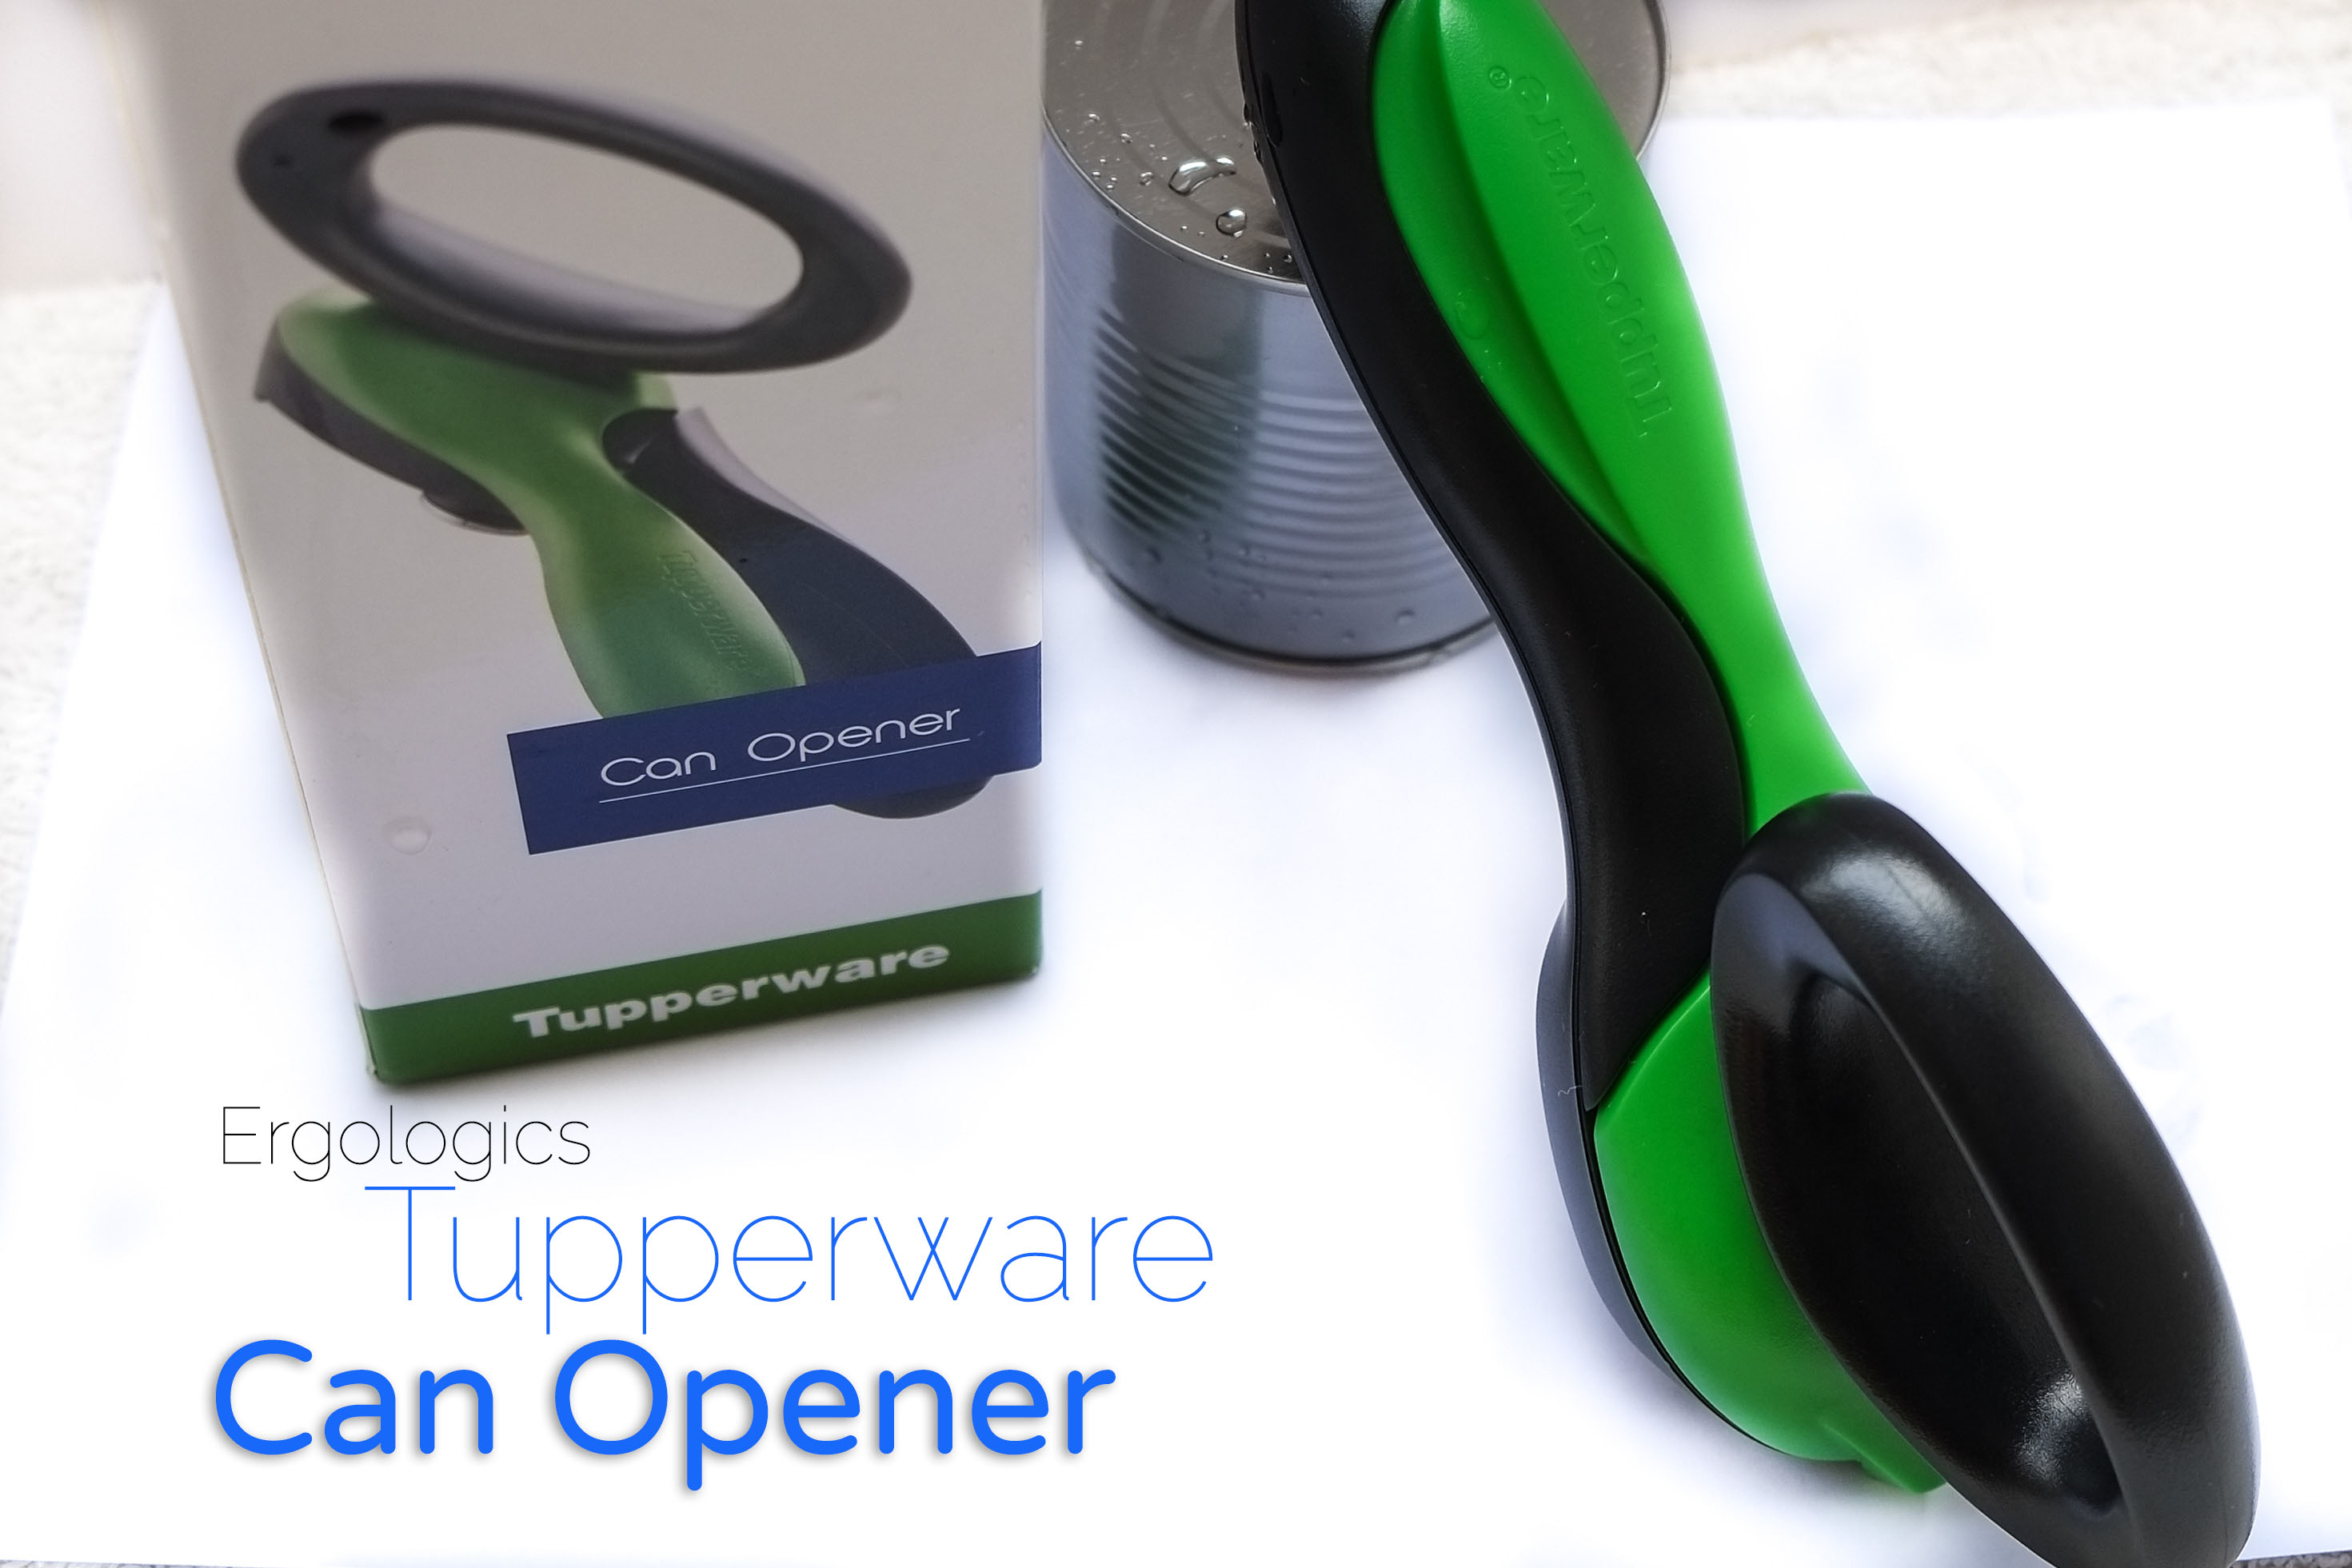 Product Review Tupperware Can Opener Joy Gurtiza